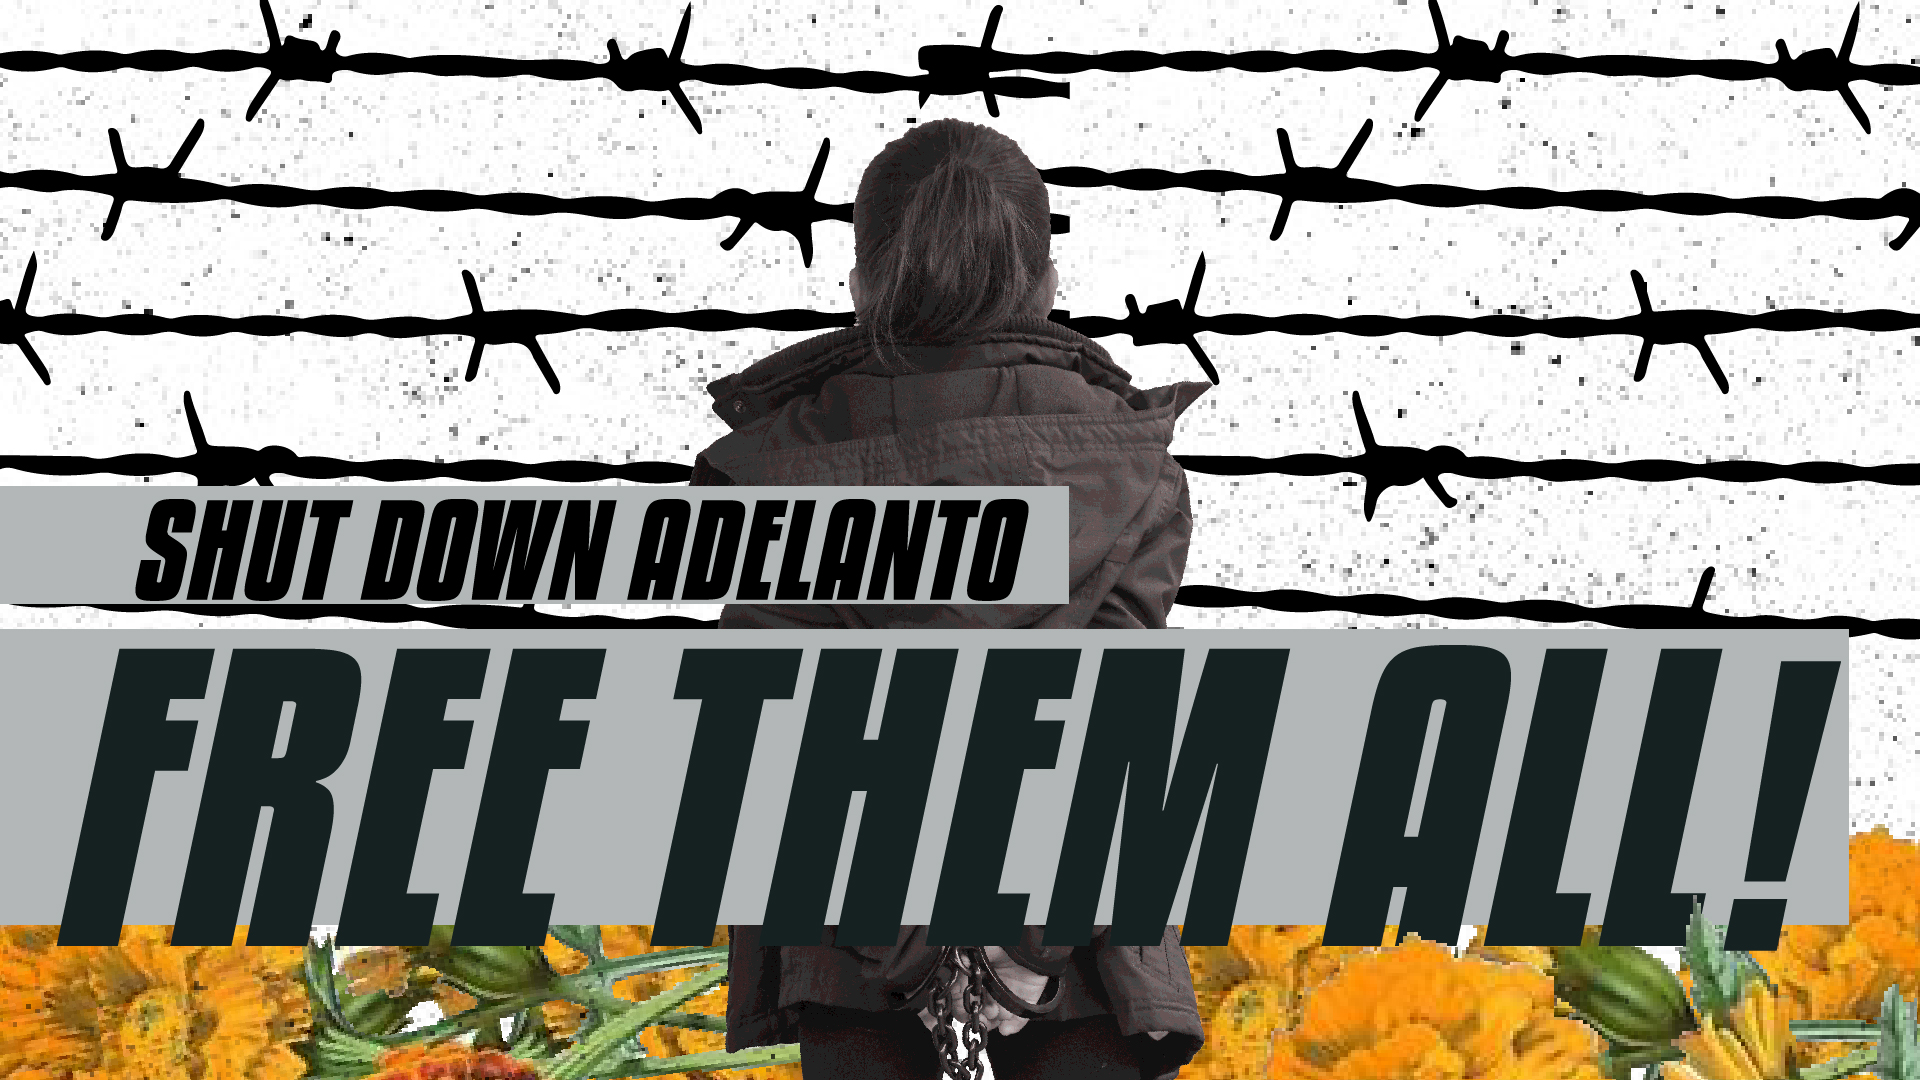 Statement: Free All Detained At Adelanto Now That Shady Deal Is Terminated